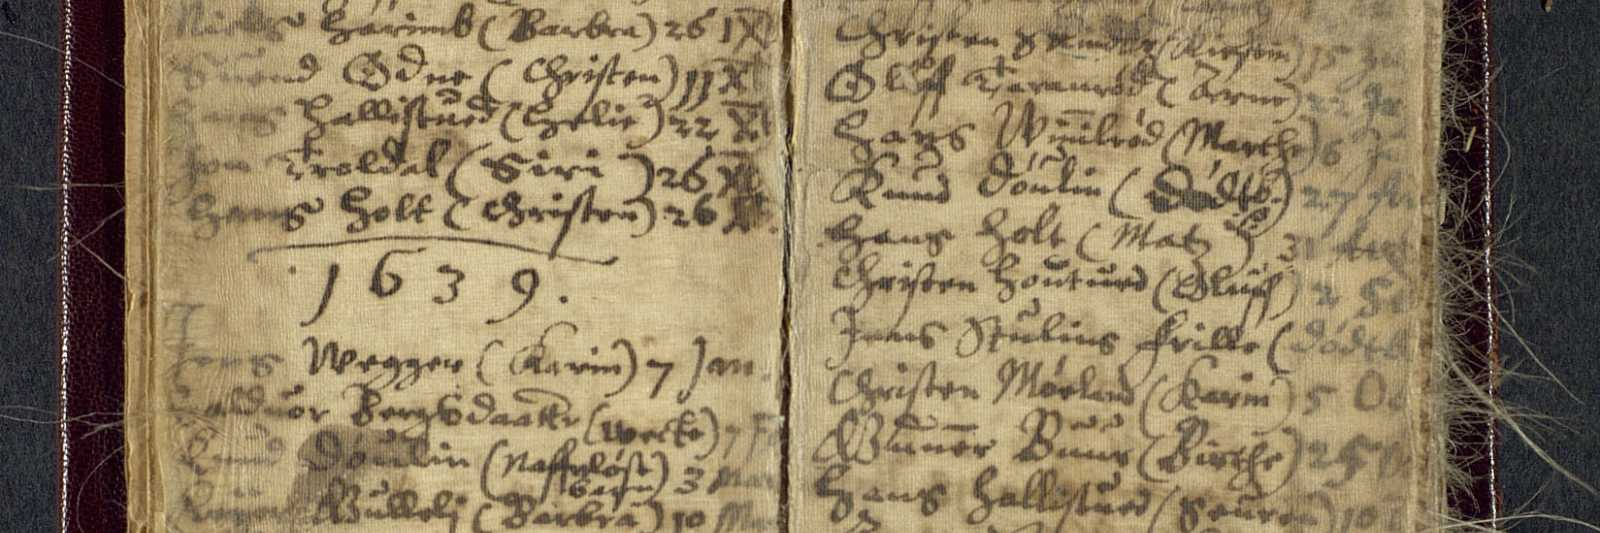 Parish Registers - The National Archives of Norway